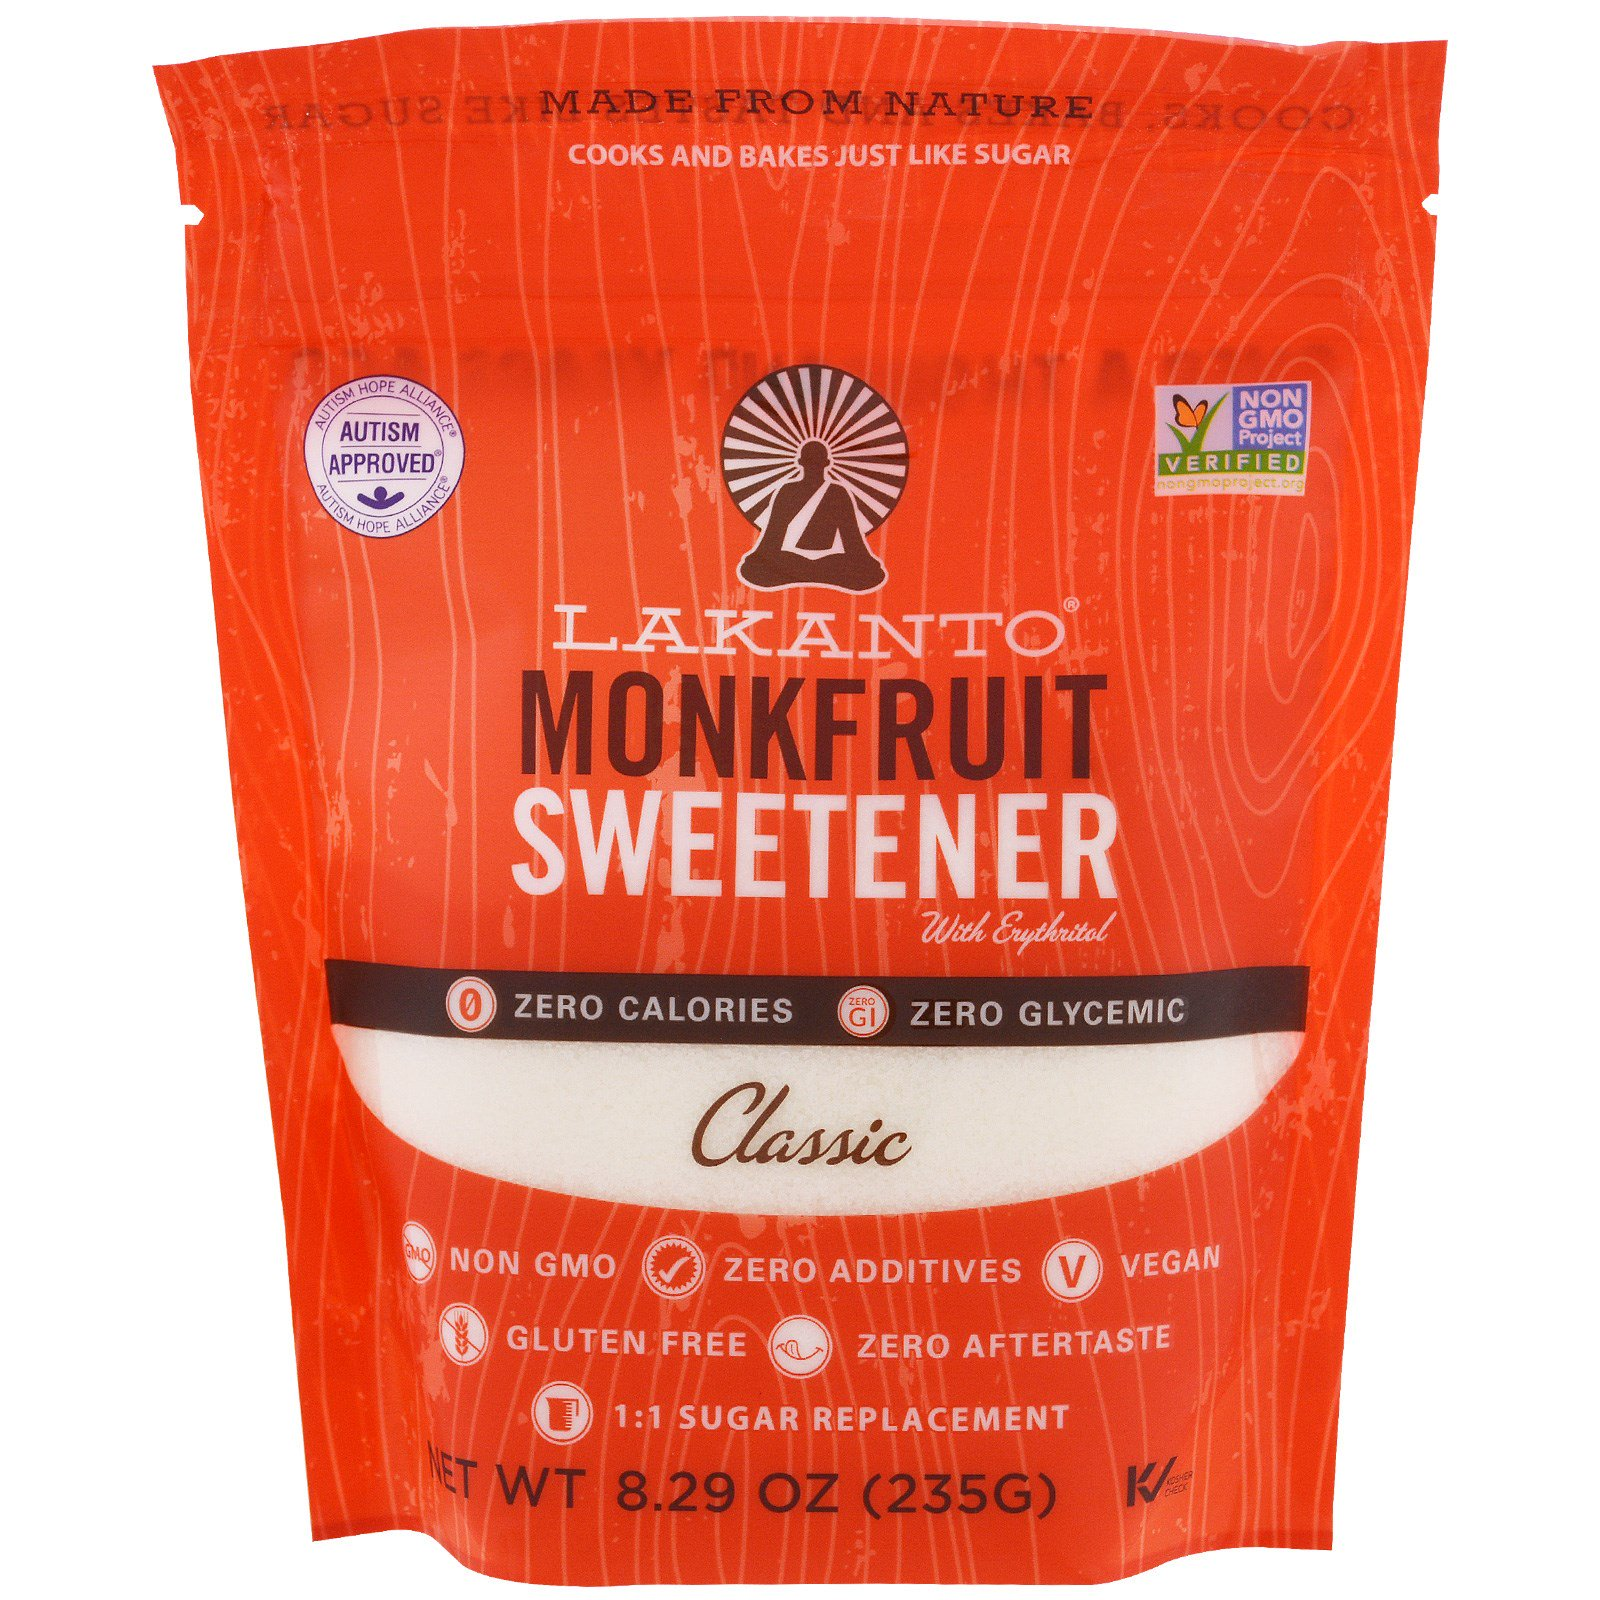 Lakanto, Monkfruit Sweetener with Erythritol, Classic, 8.29 oz (235g)